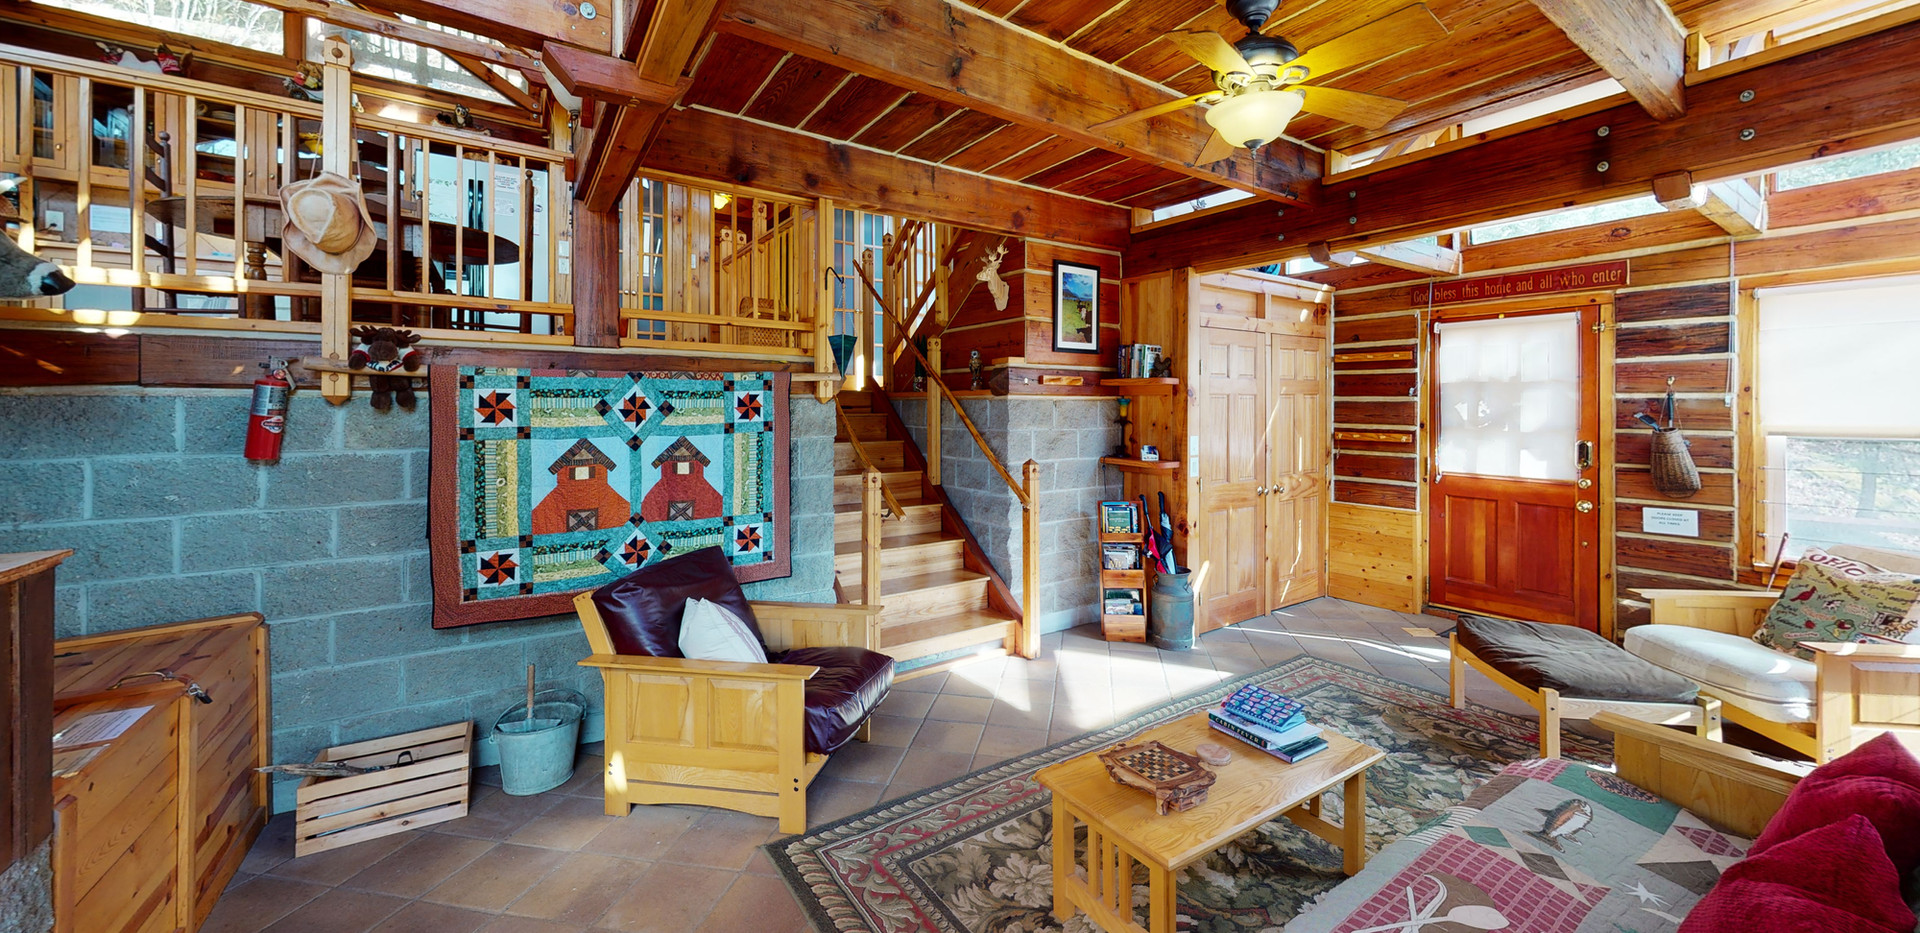 Big-Pine-Tree-House-Lobby.jpg